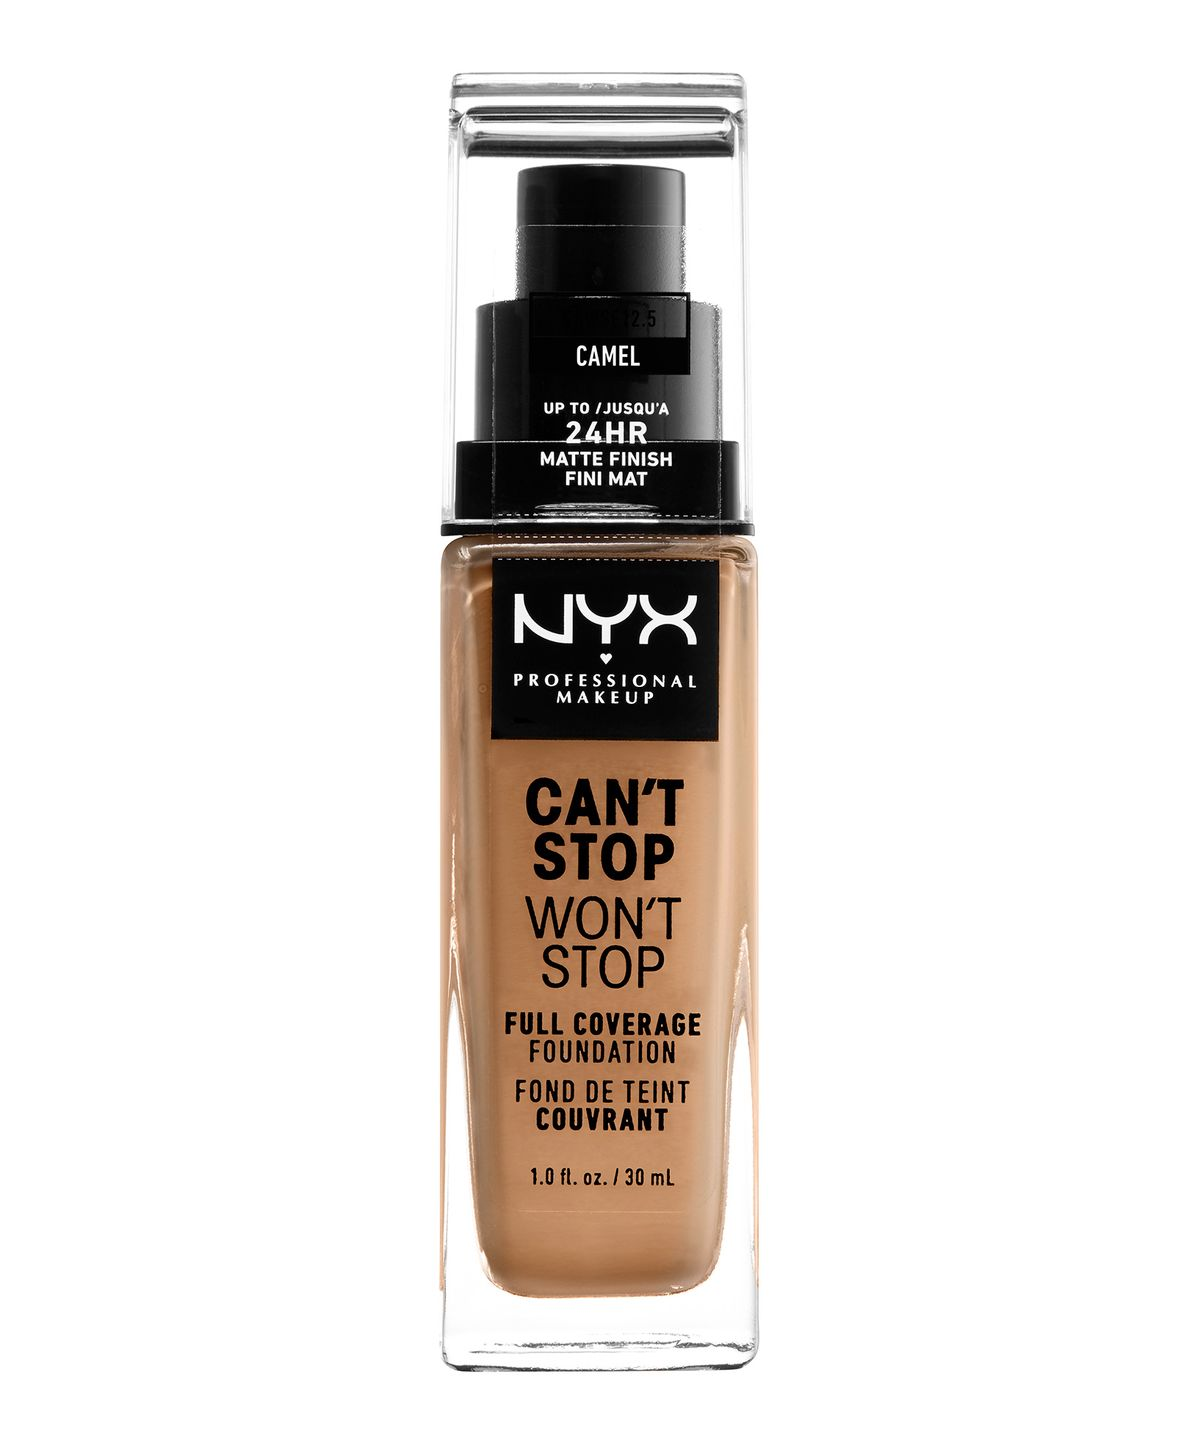 CANT STOP WONT STOP 24HR FOUNDATION CAMEL - NYX PROFESSIONAL MAKEUP